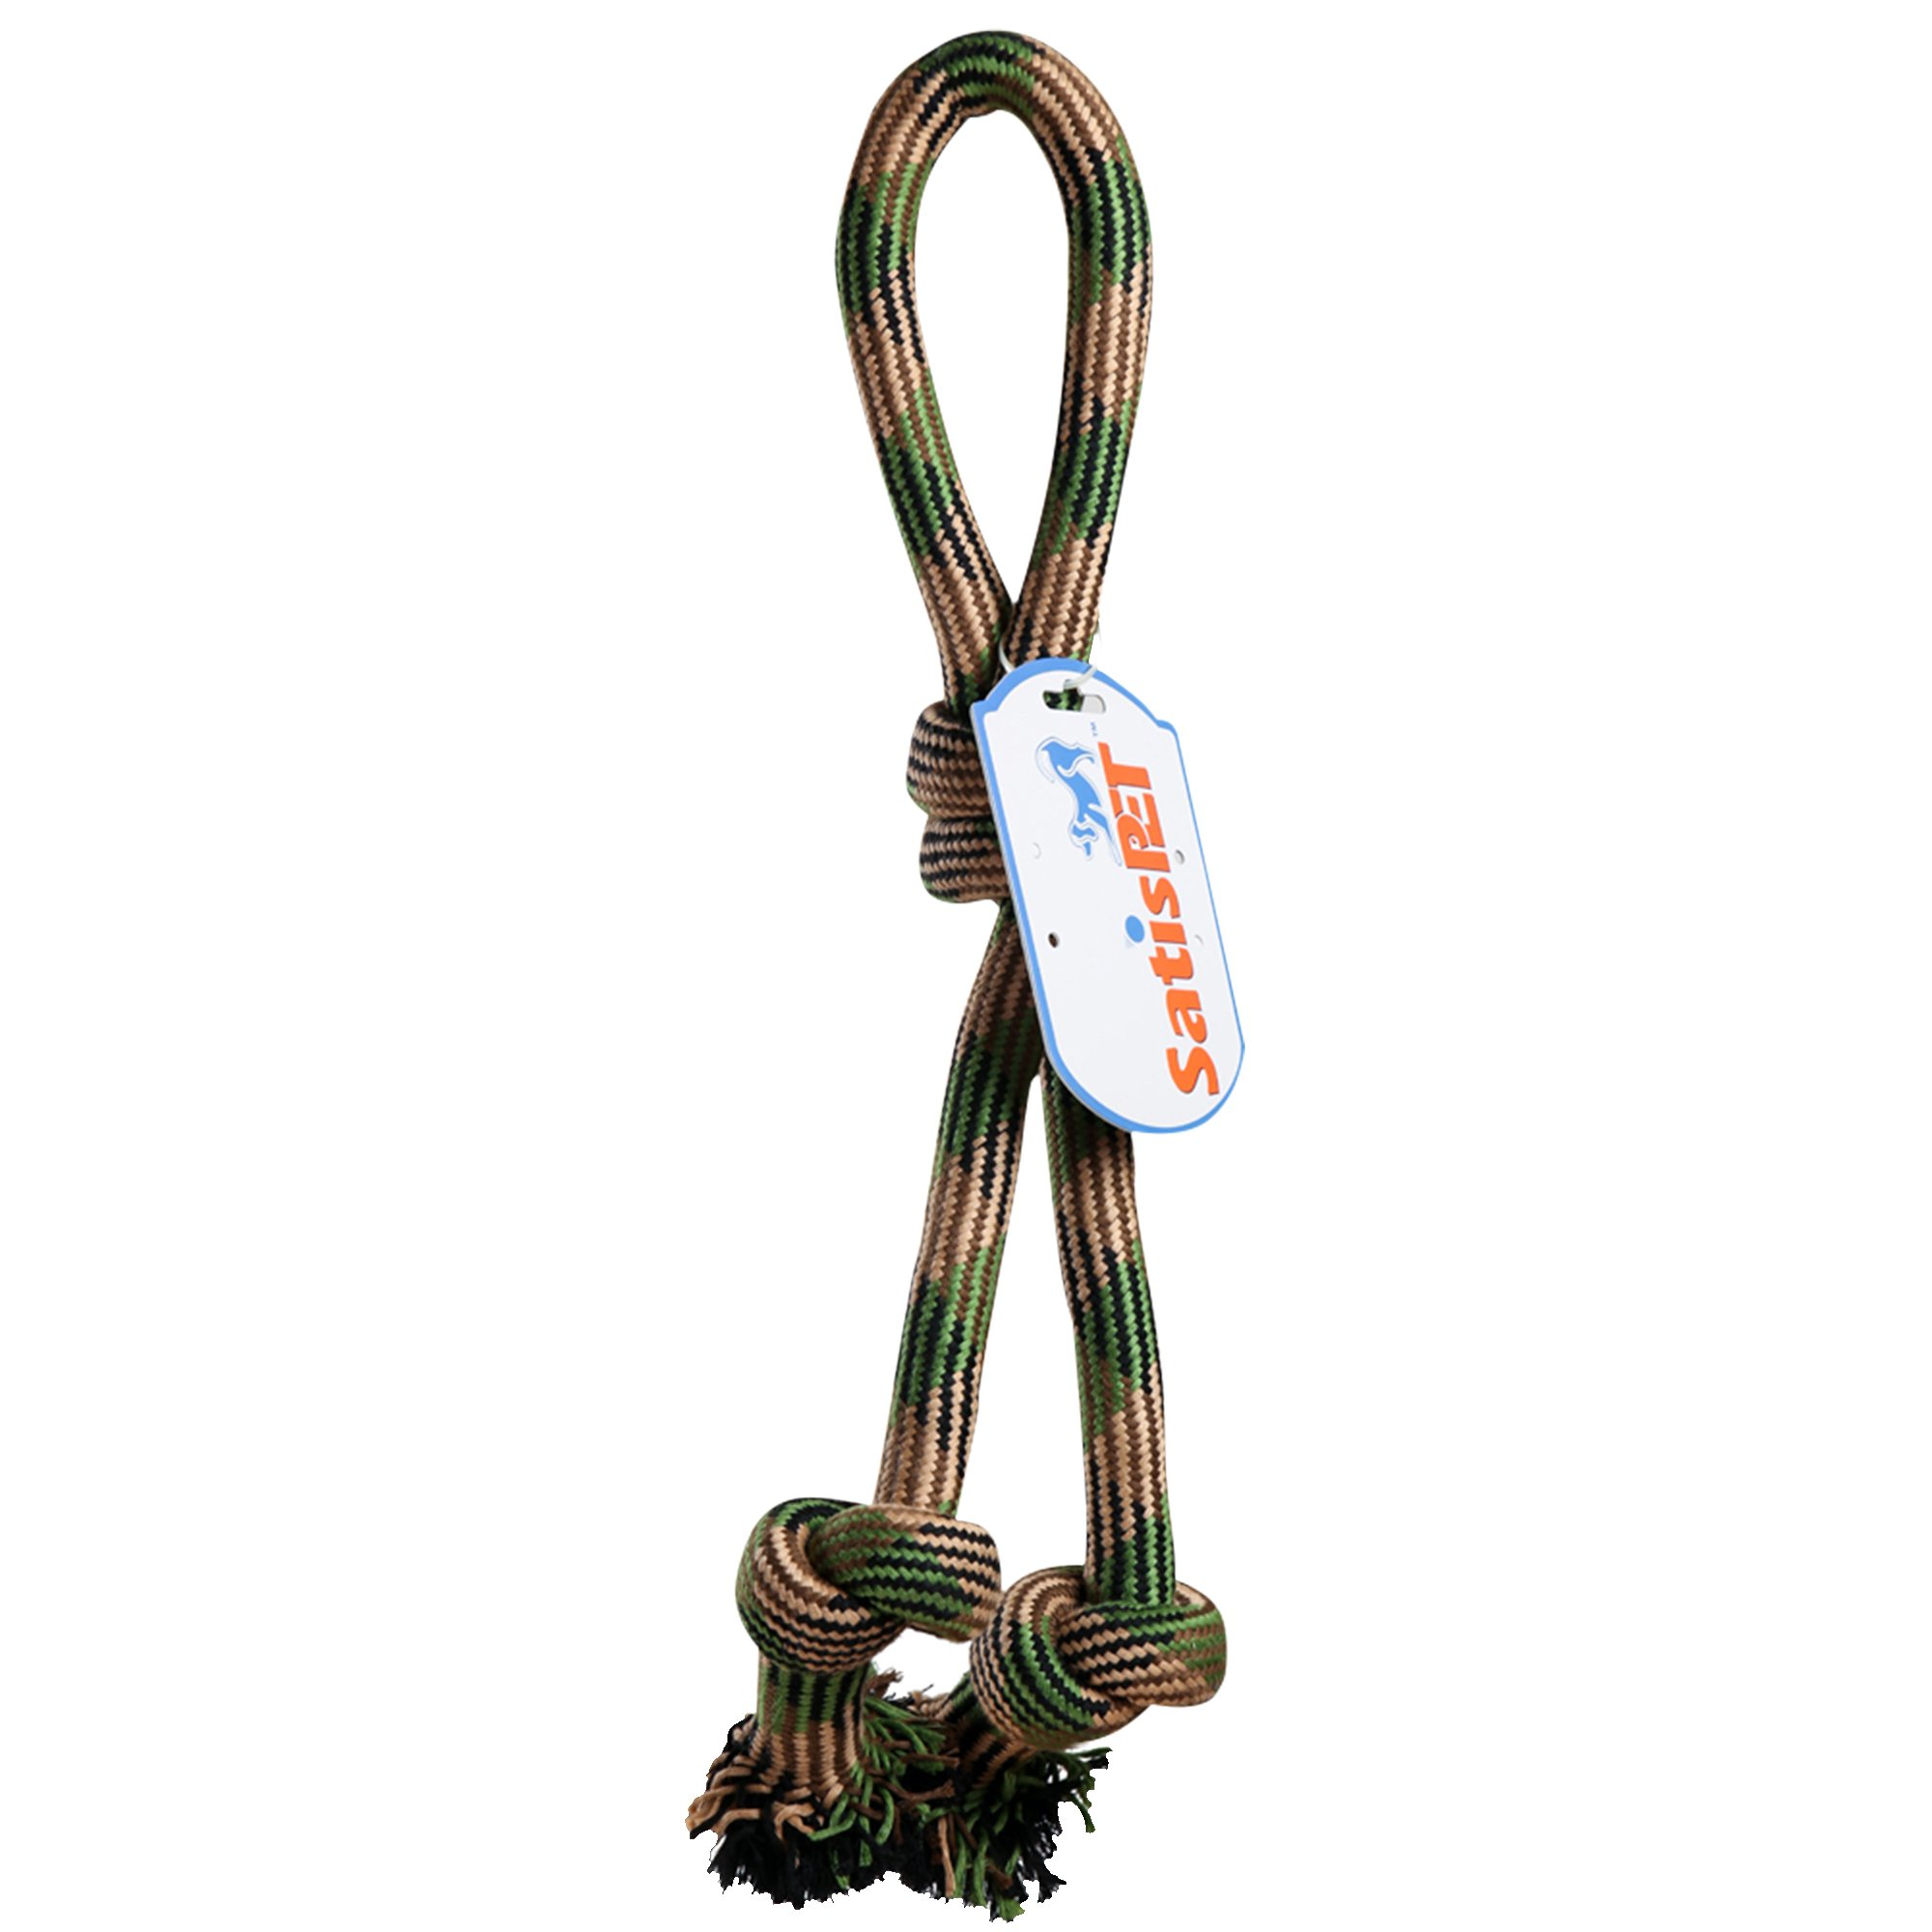 SatisPet 24-Inch Knotted Woven Rope Tug Chew Toy for Large Dogs, Camouflage